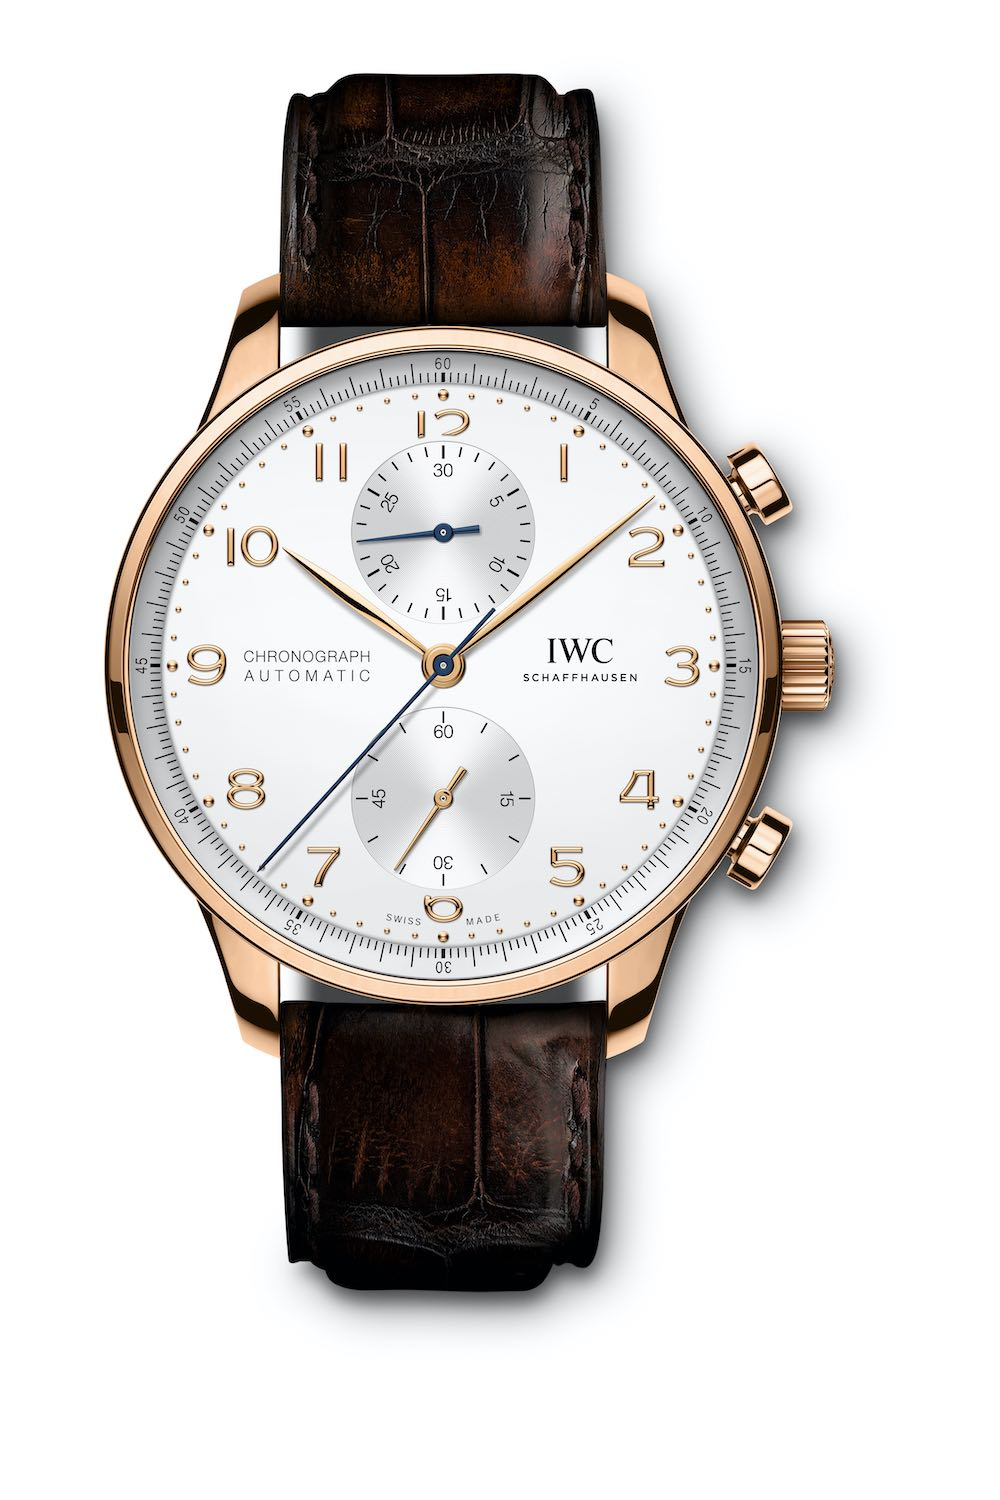 IWC Portugieser Chronograph iw3716 in-house calibre 69335 - iw371611